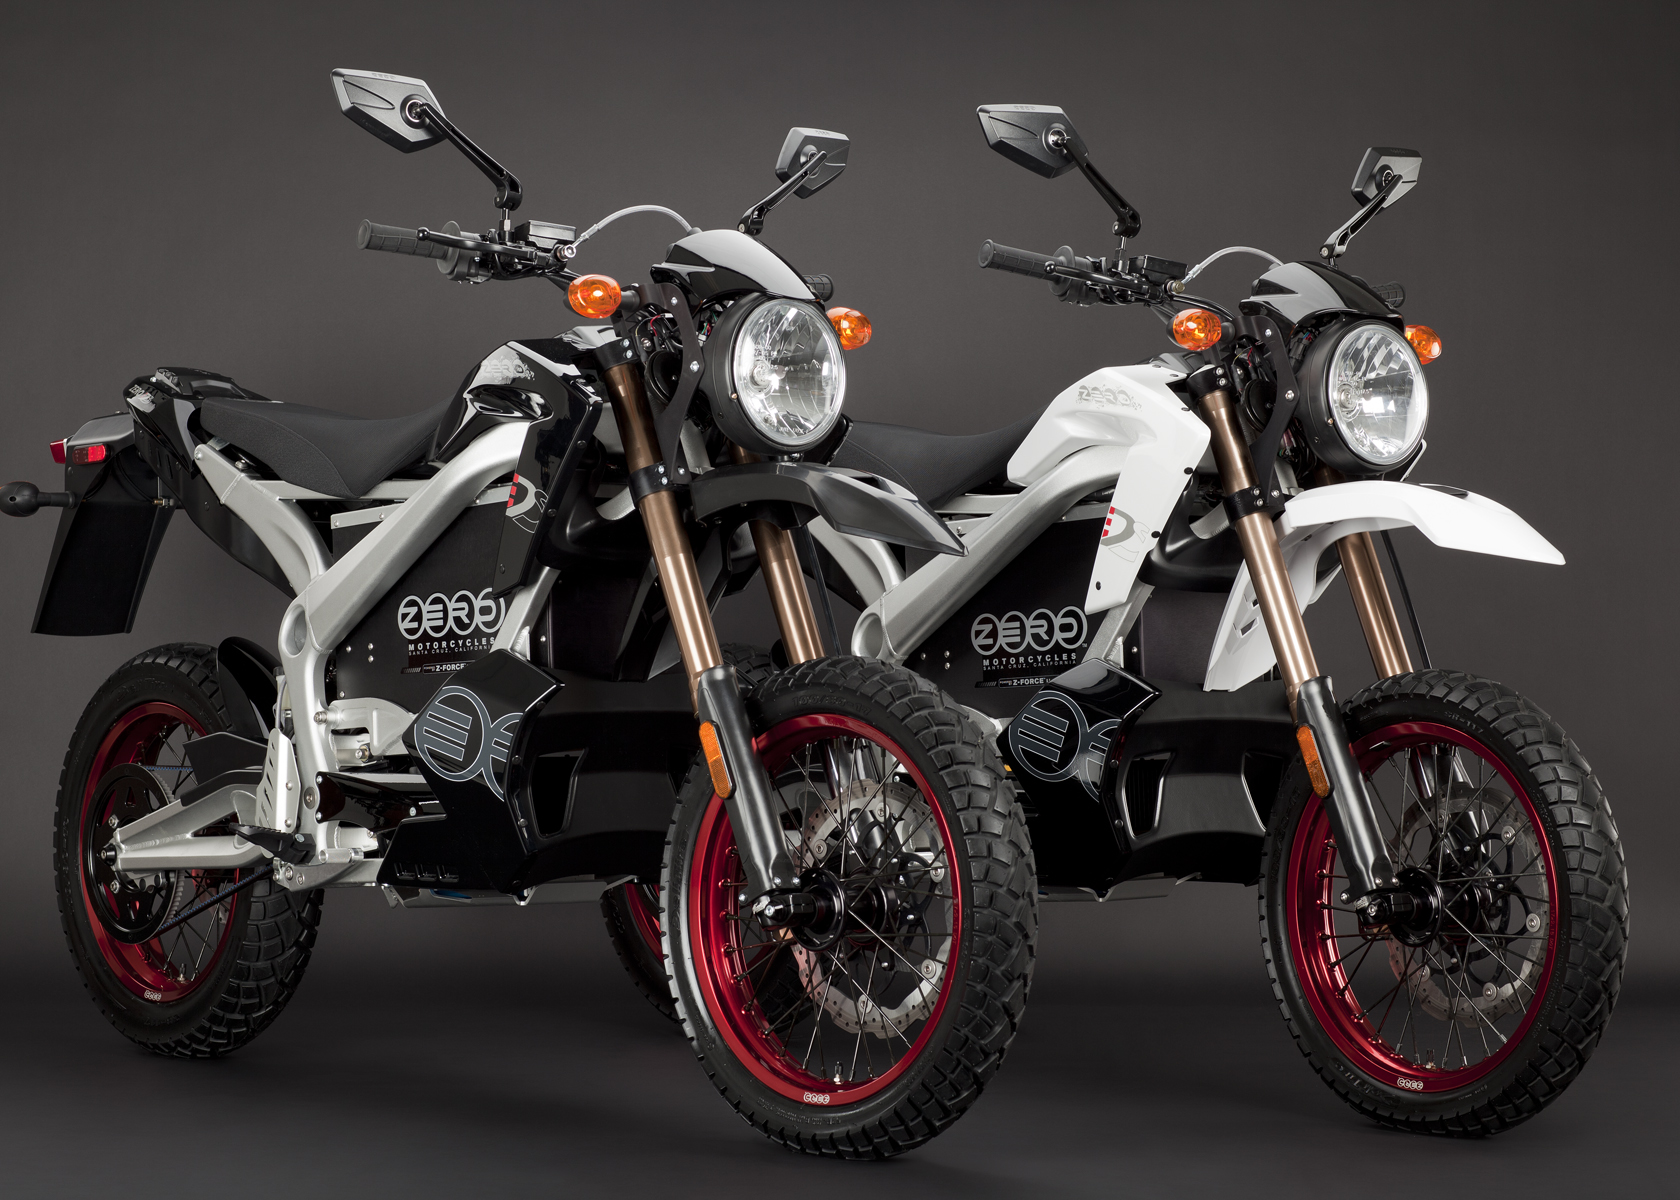 2011 Zero DS Electric Motorcycle: Pair, White and Black